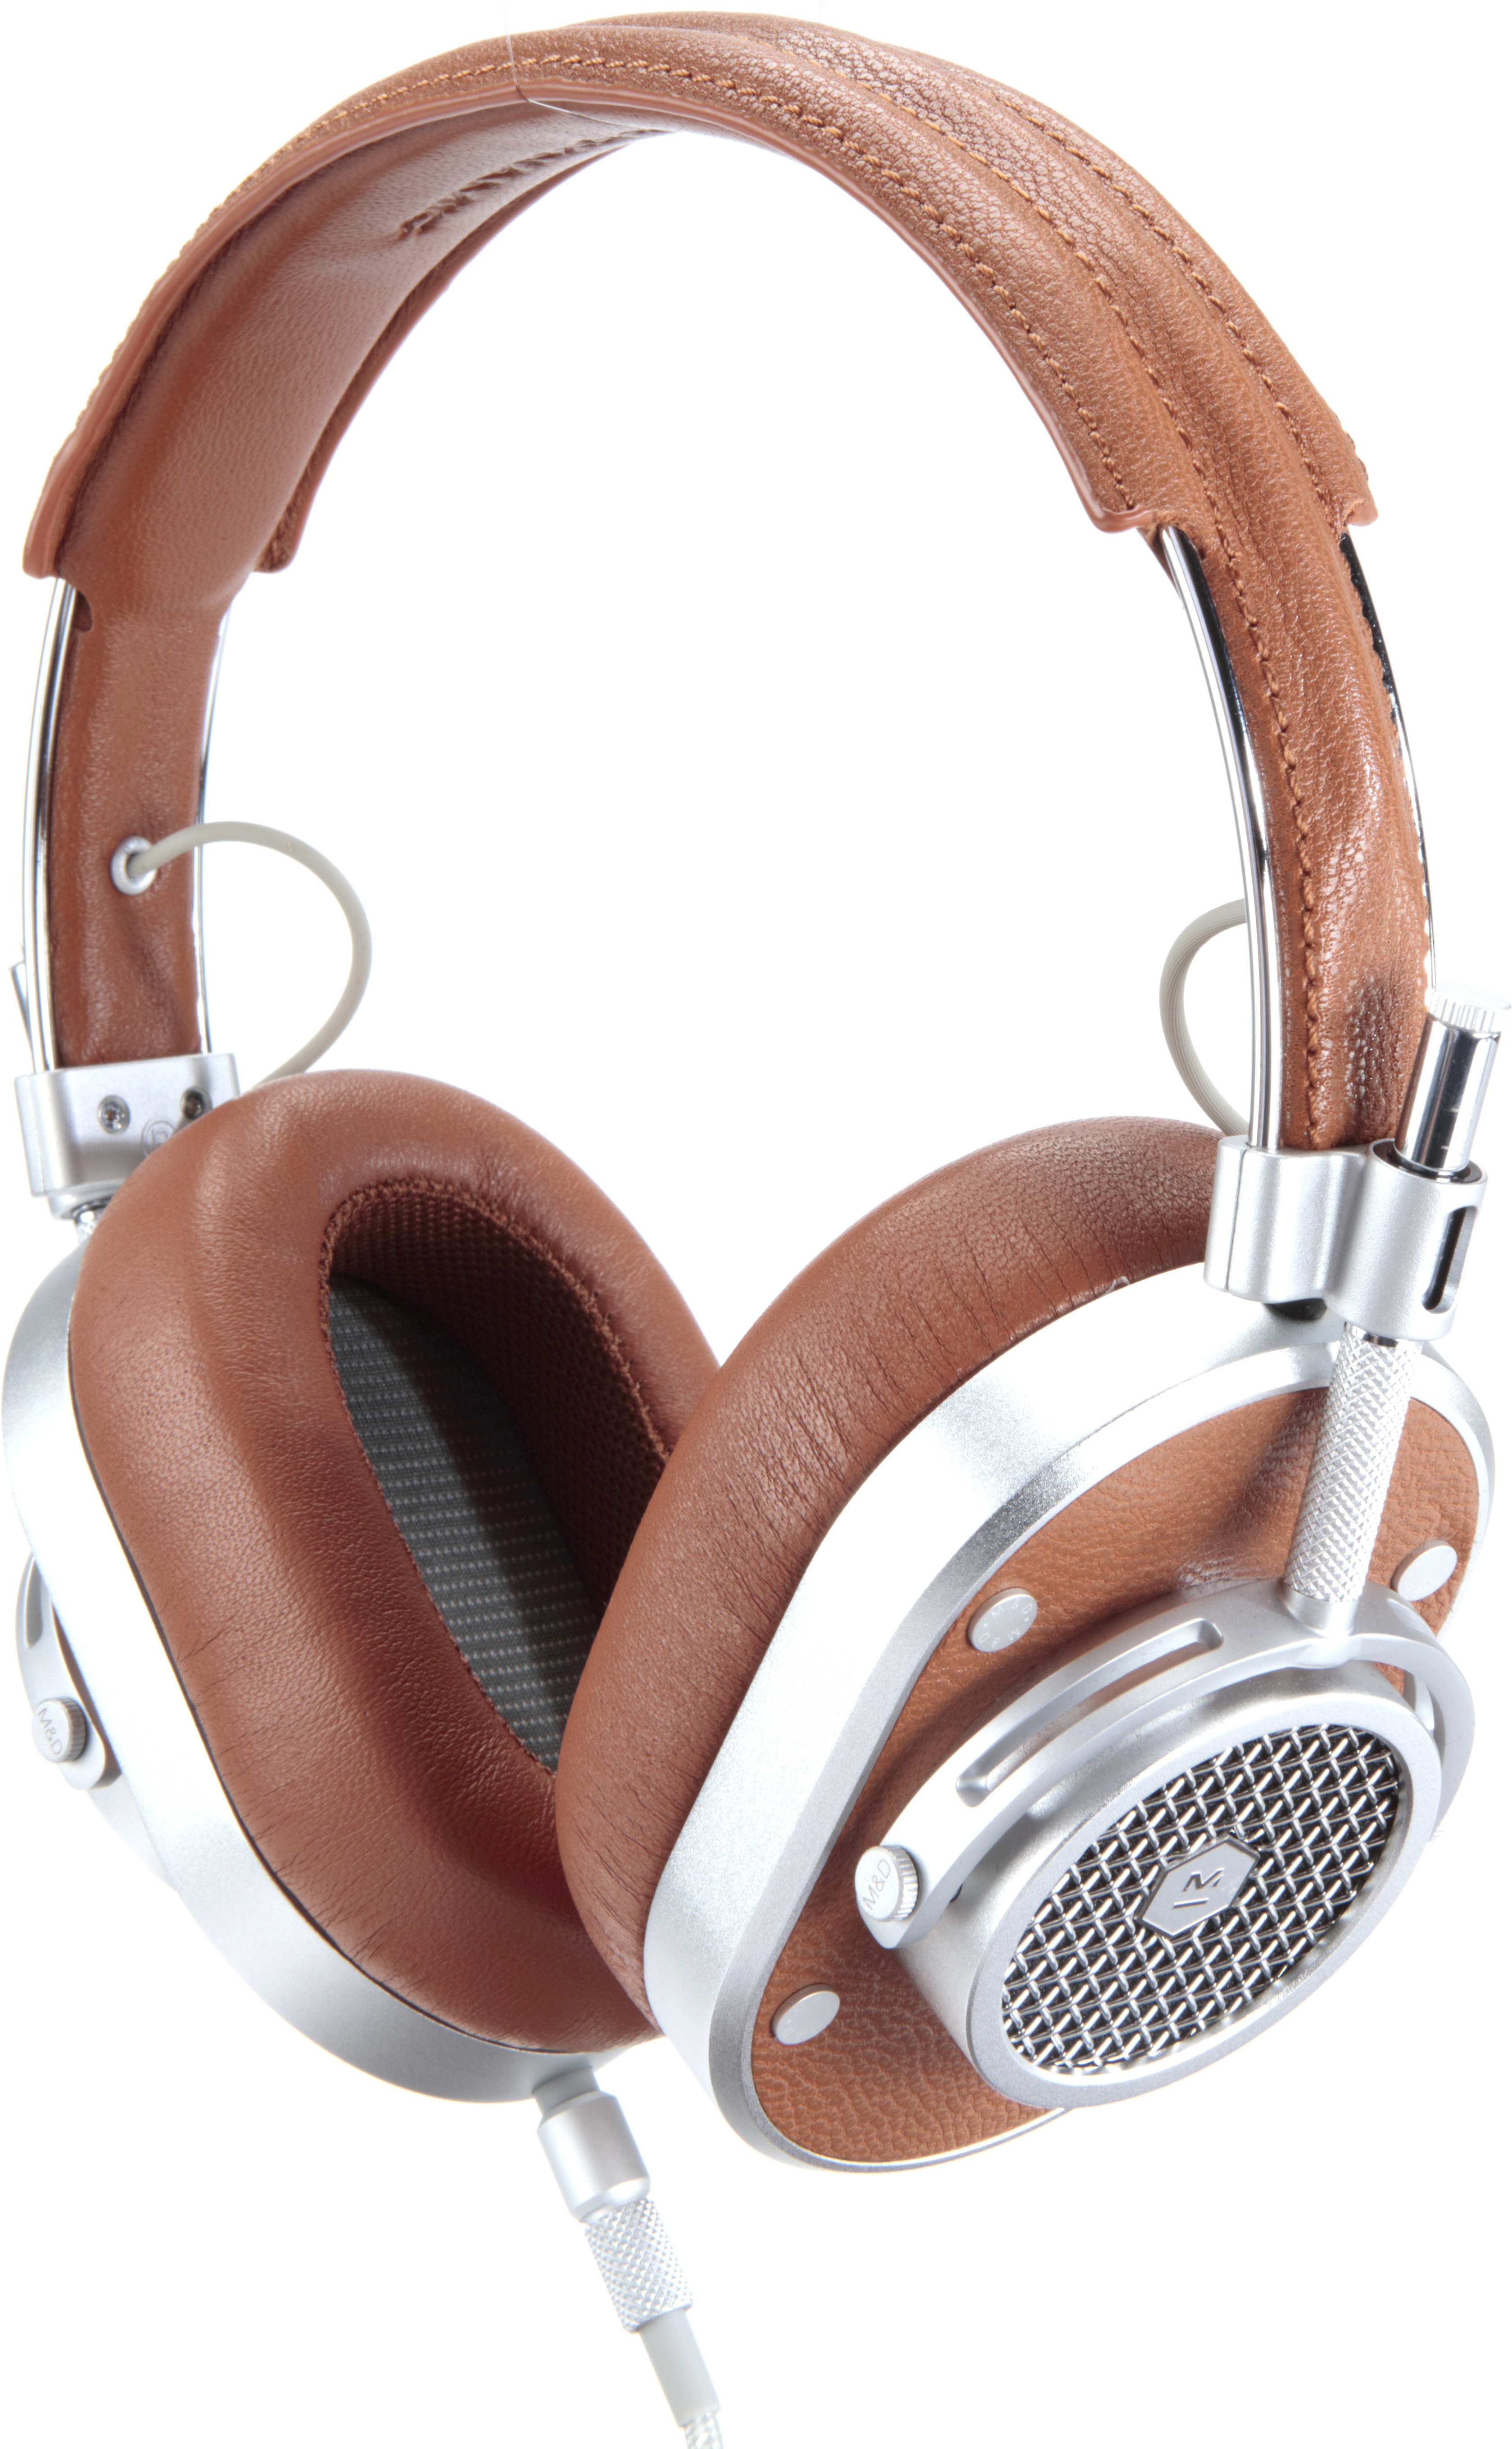 549e84c2f63d2d Master & Dynamic MH40 (Silver Metal/Brown Leather) Over-ear headphones with  Apple® remote and microphone at Crutchfield.com